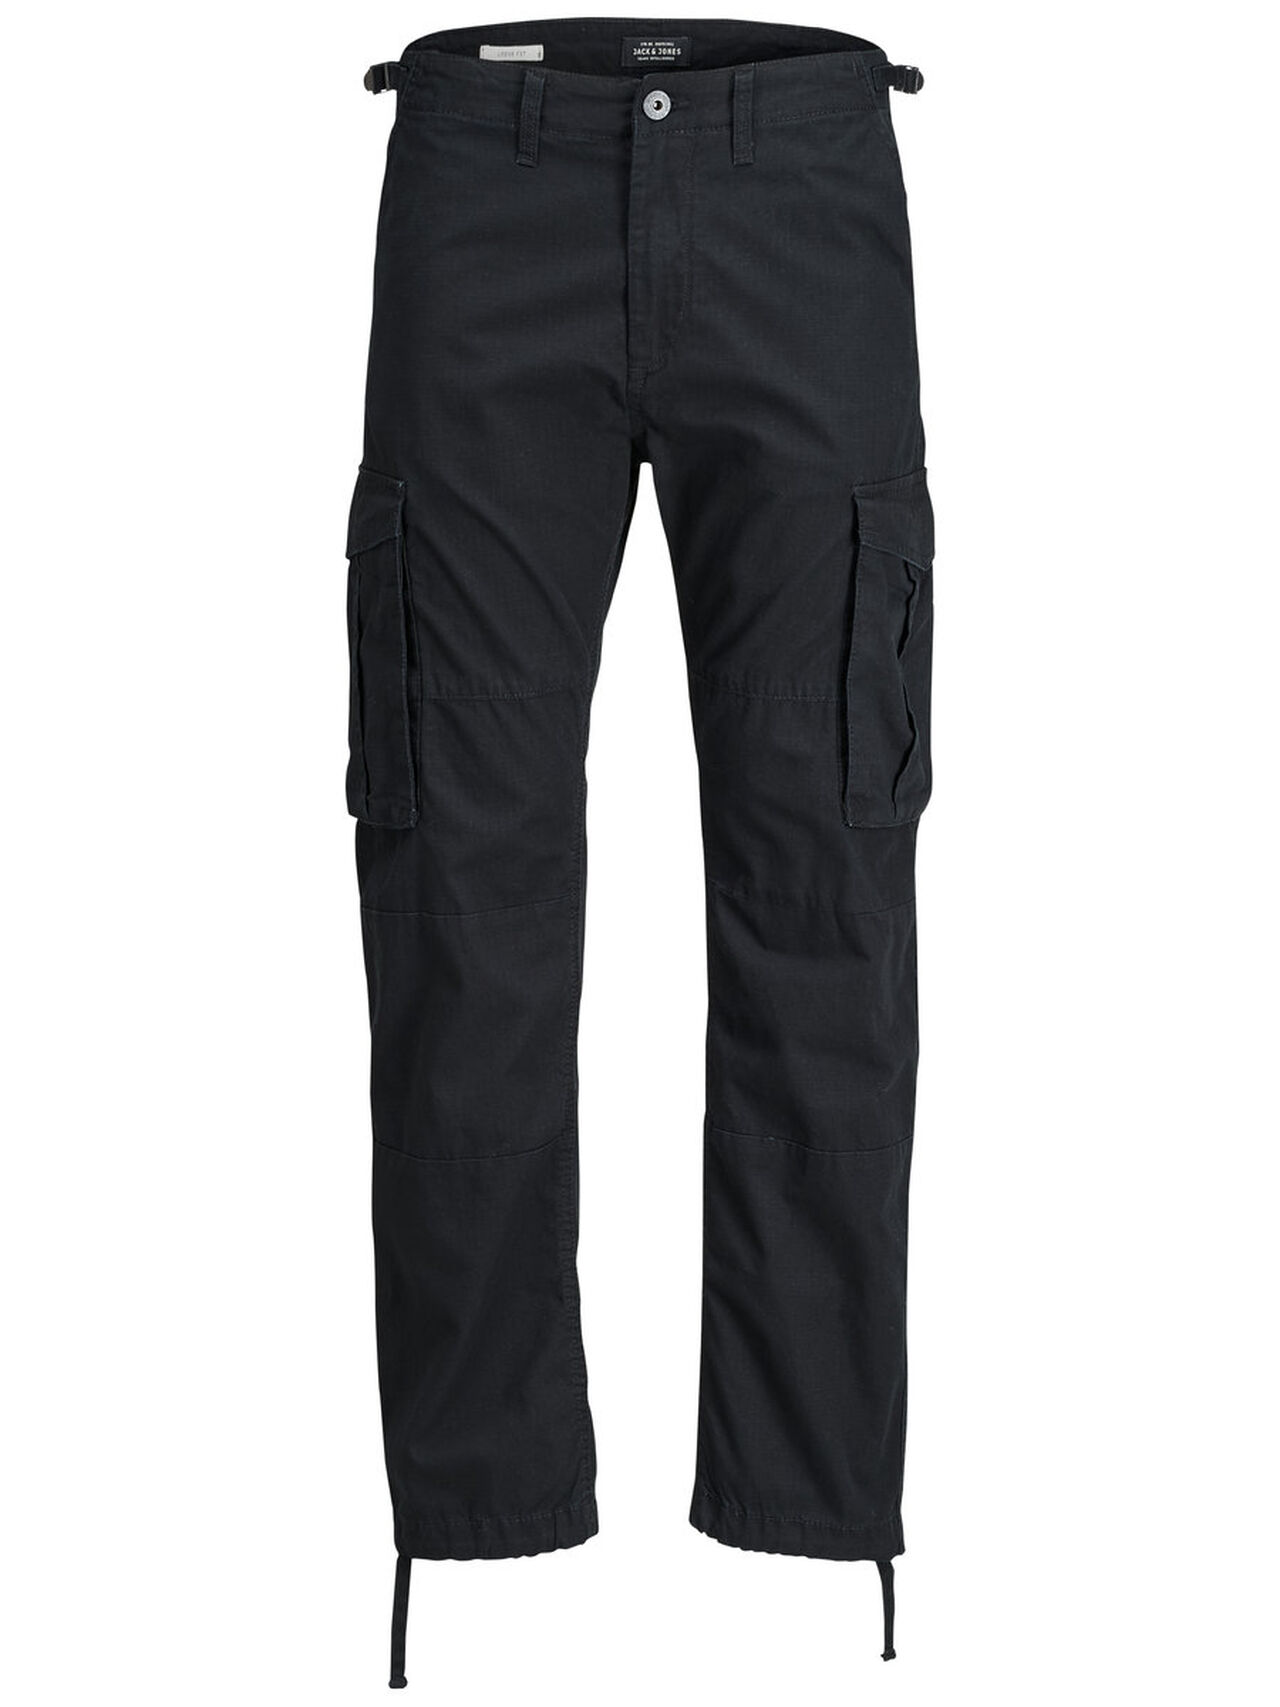 JACK & JONES Anakin Cargo Akm 361 Cargo Pants Men Black